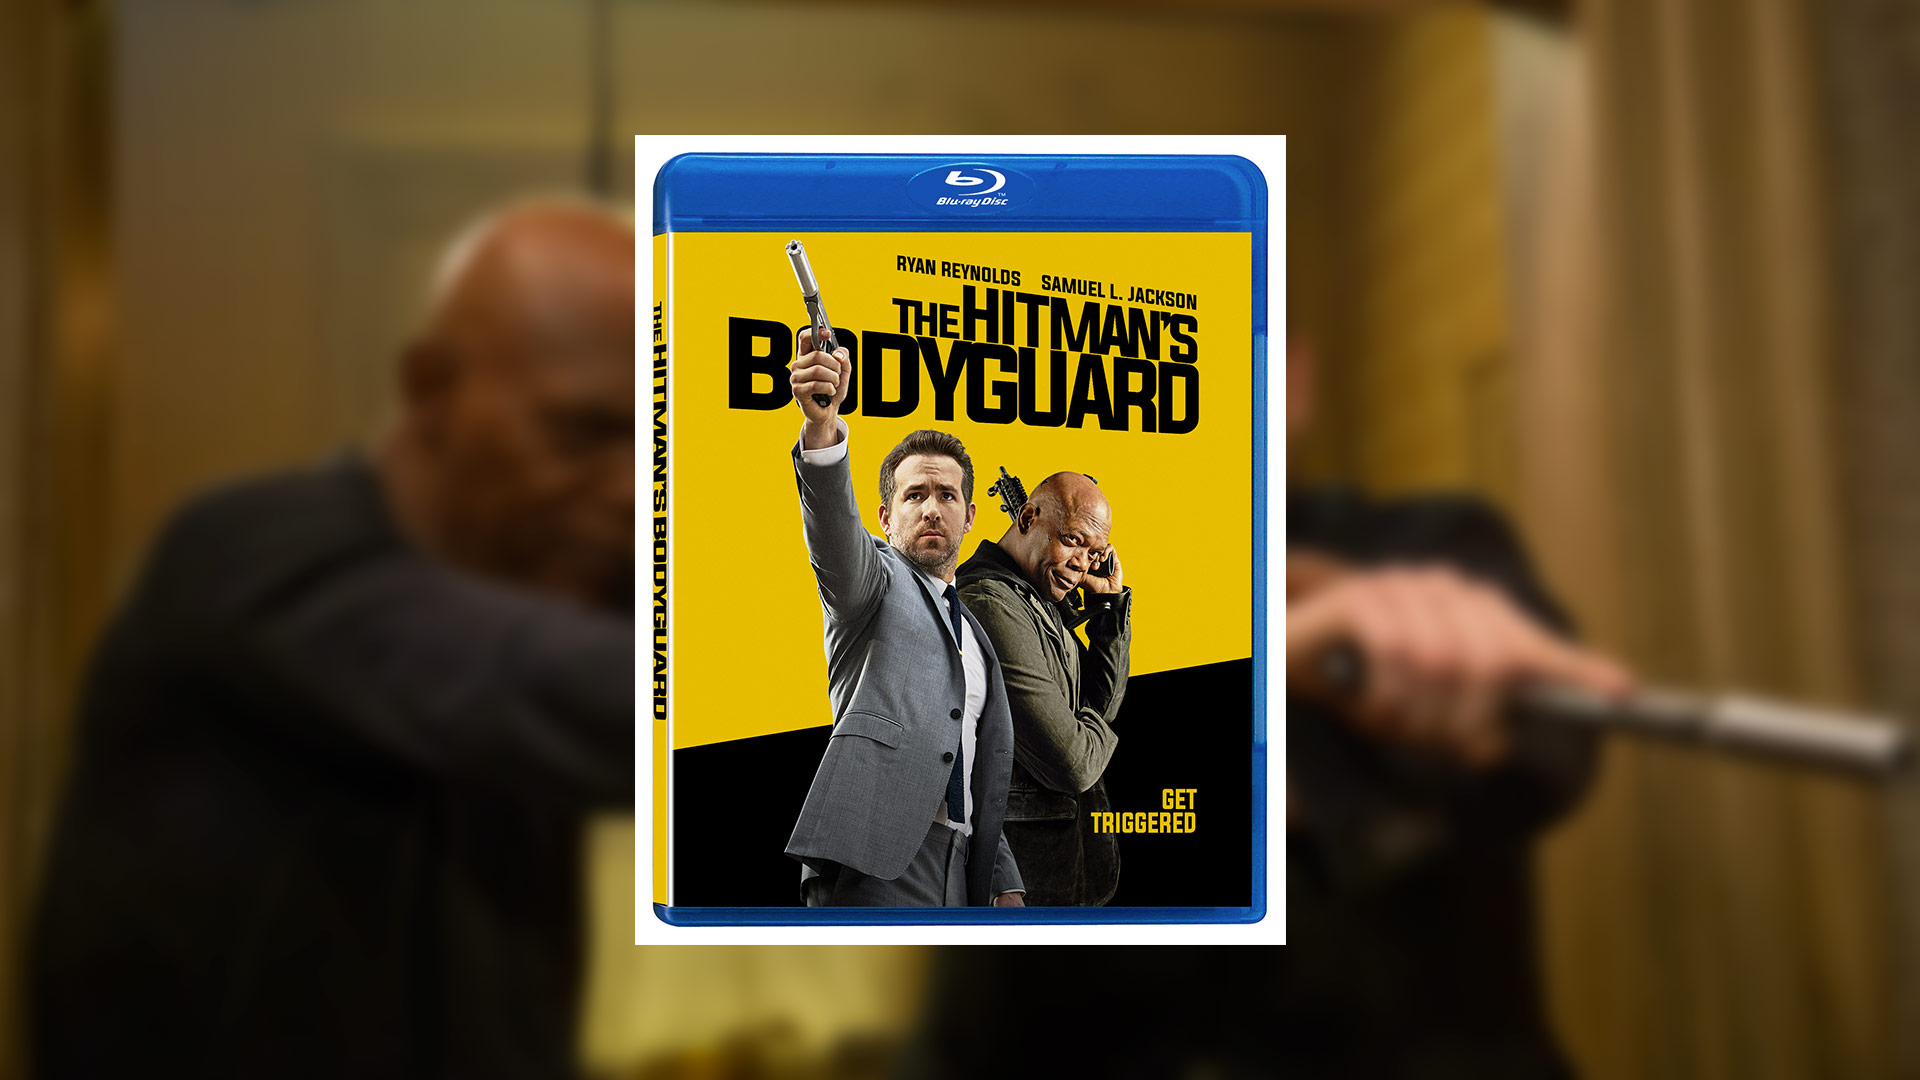 [Critique Film] The Hitman's Bodyguard de Patrick Hughes